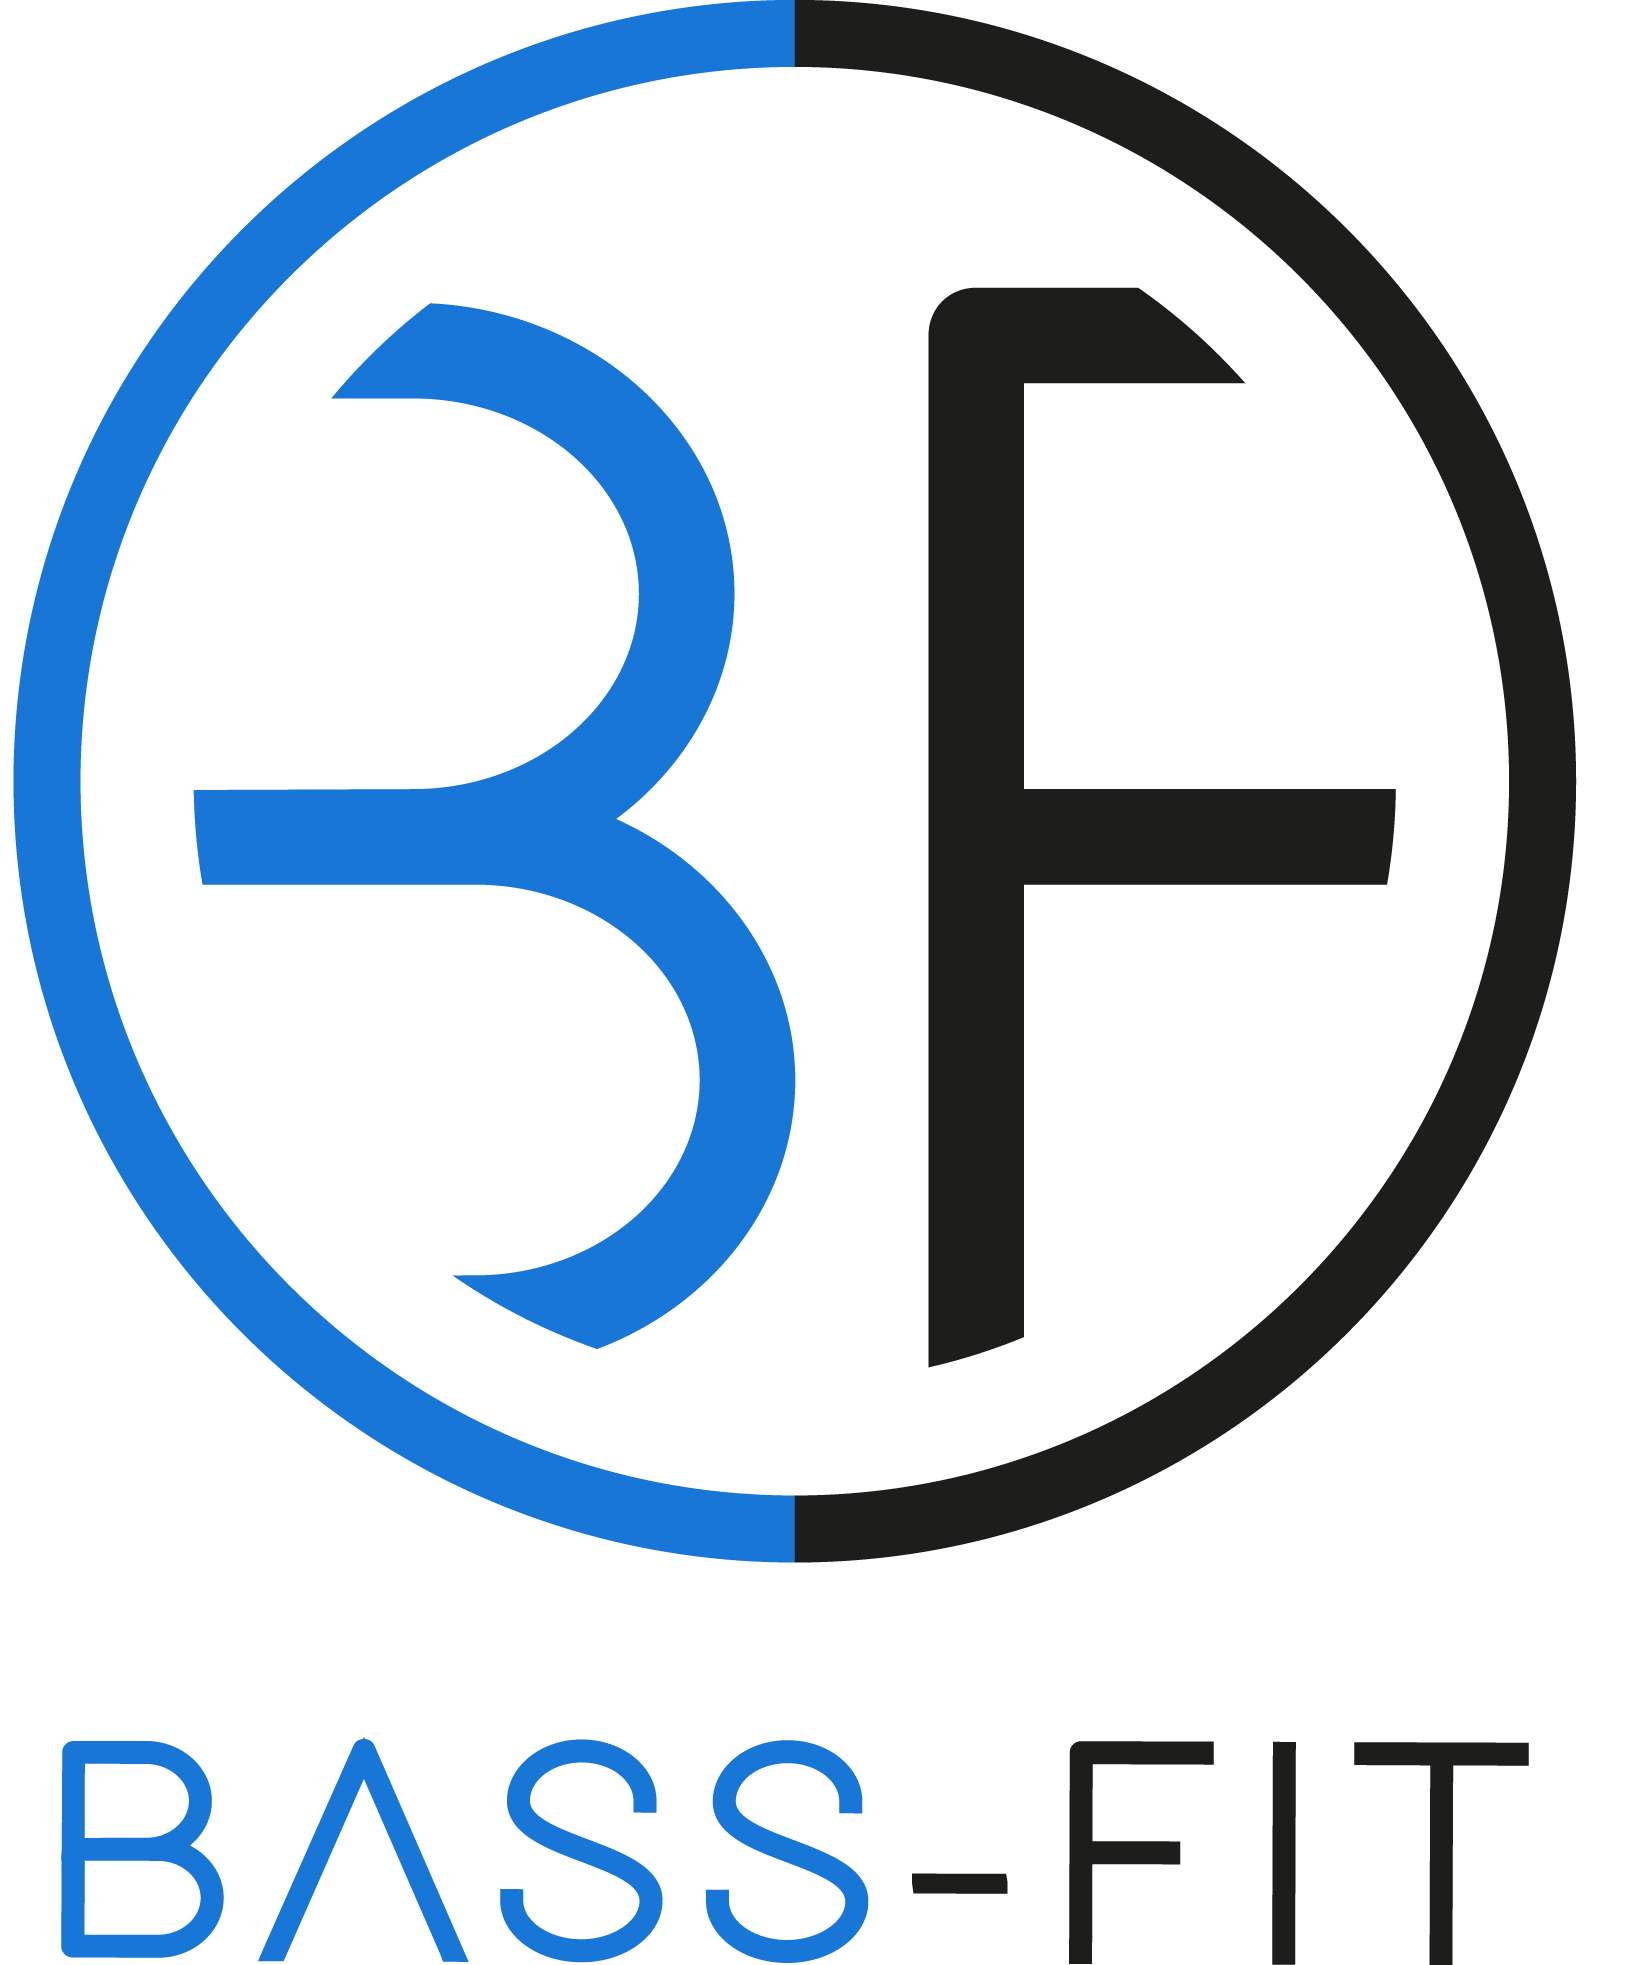 bass-fit-full-colour-with-text